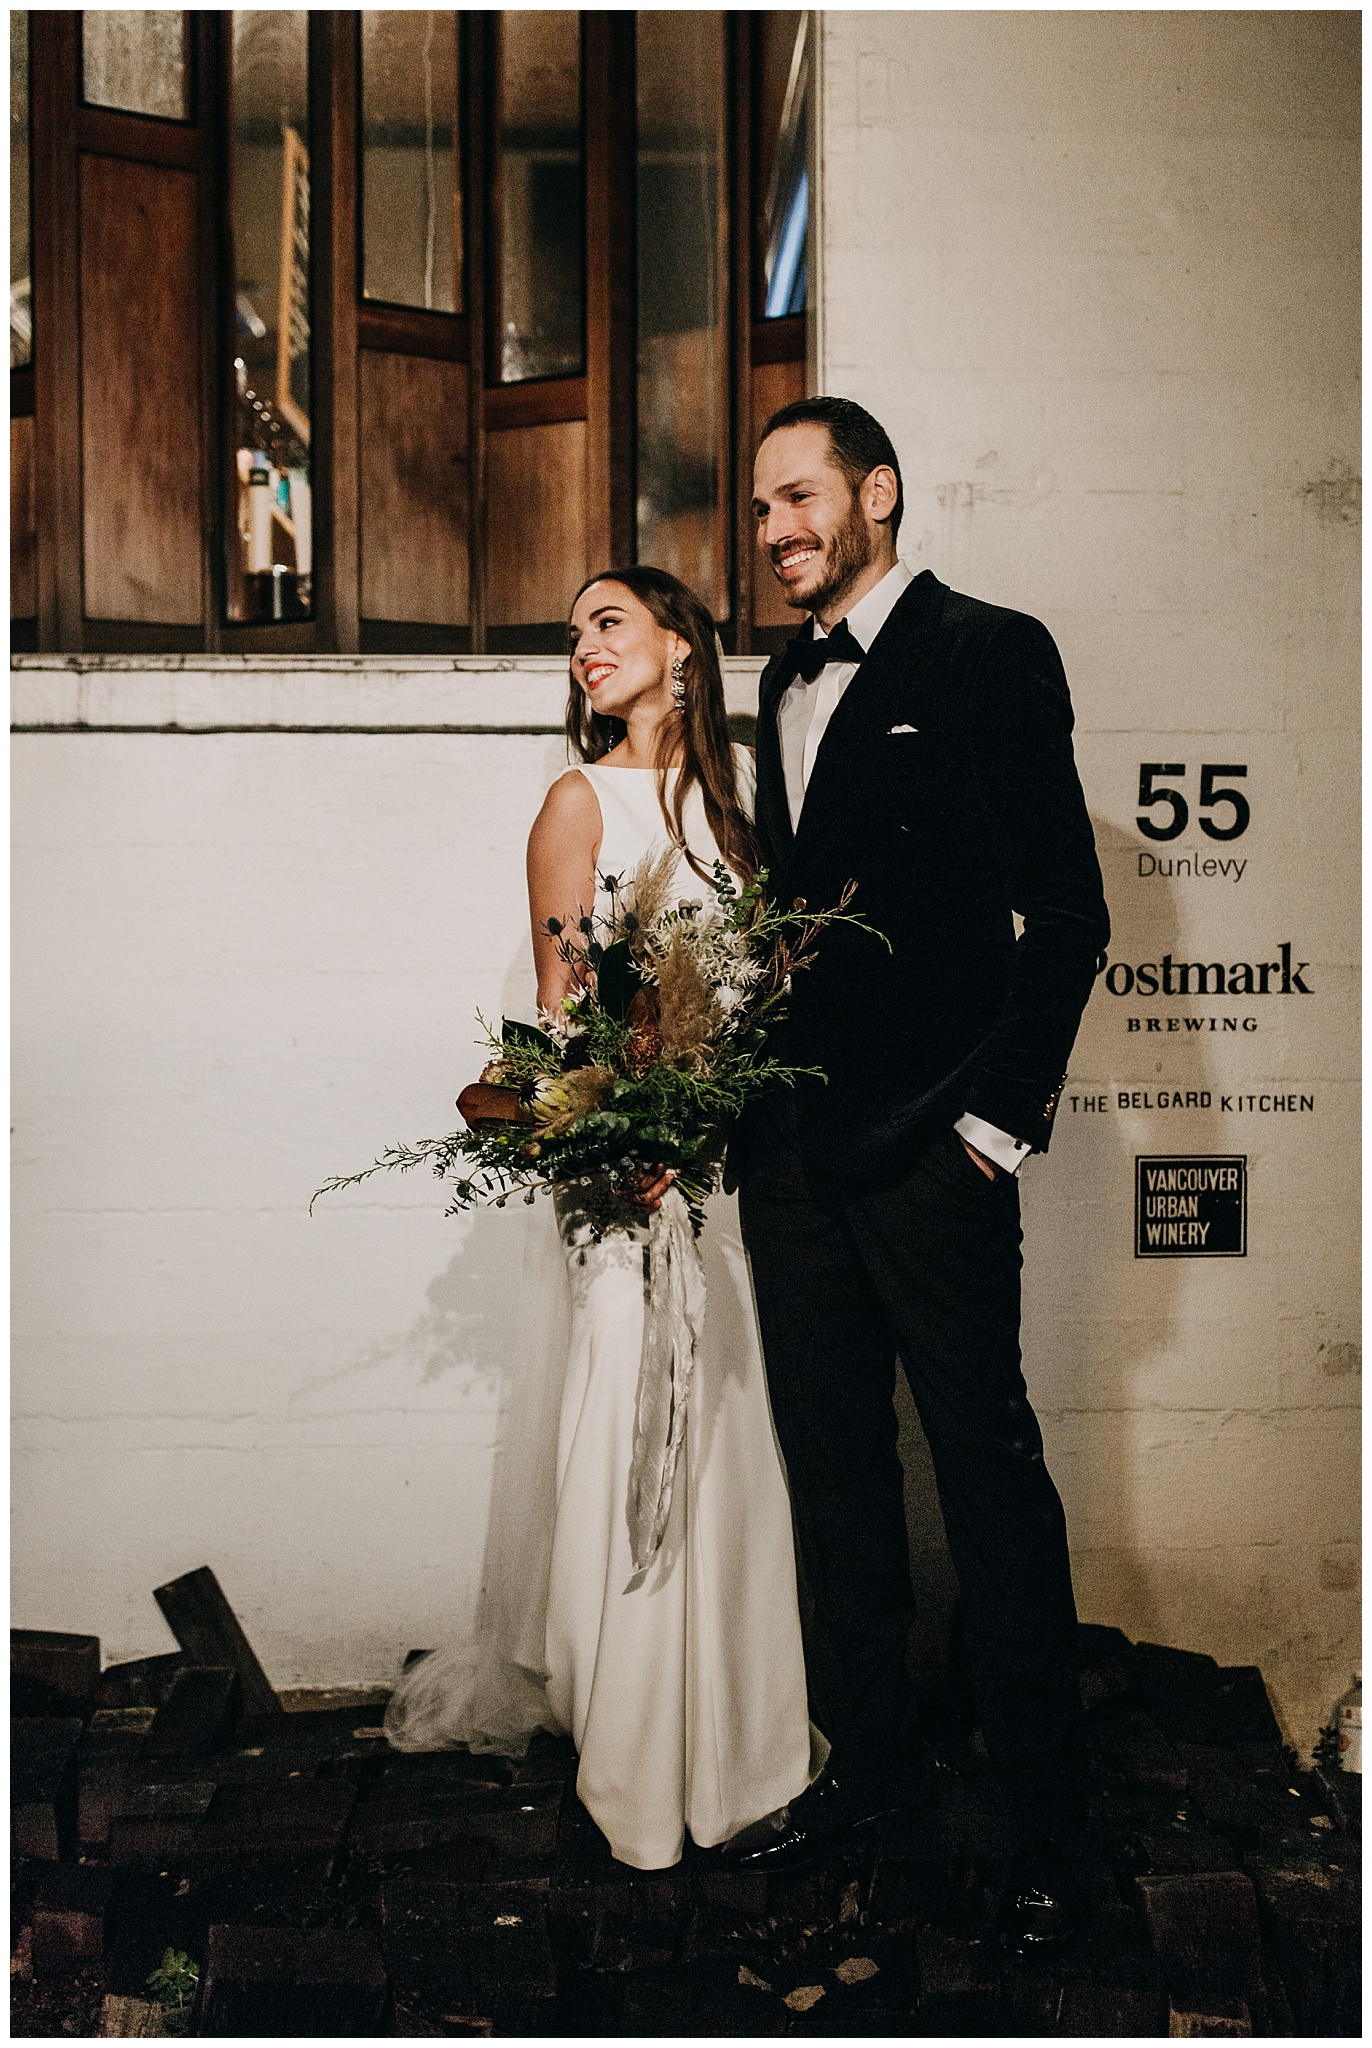 bride and groom wedding portrait outside Postmark Brewing